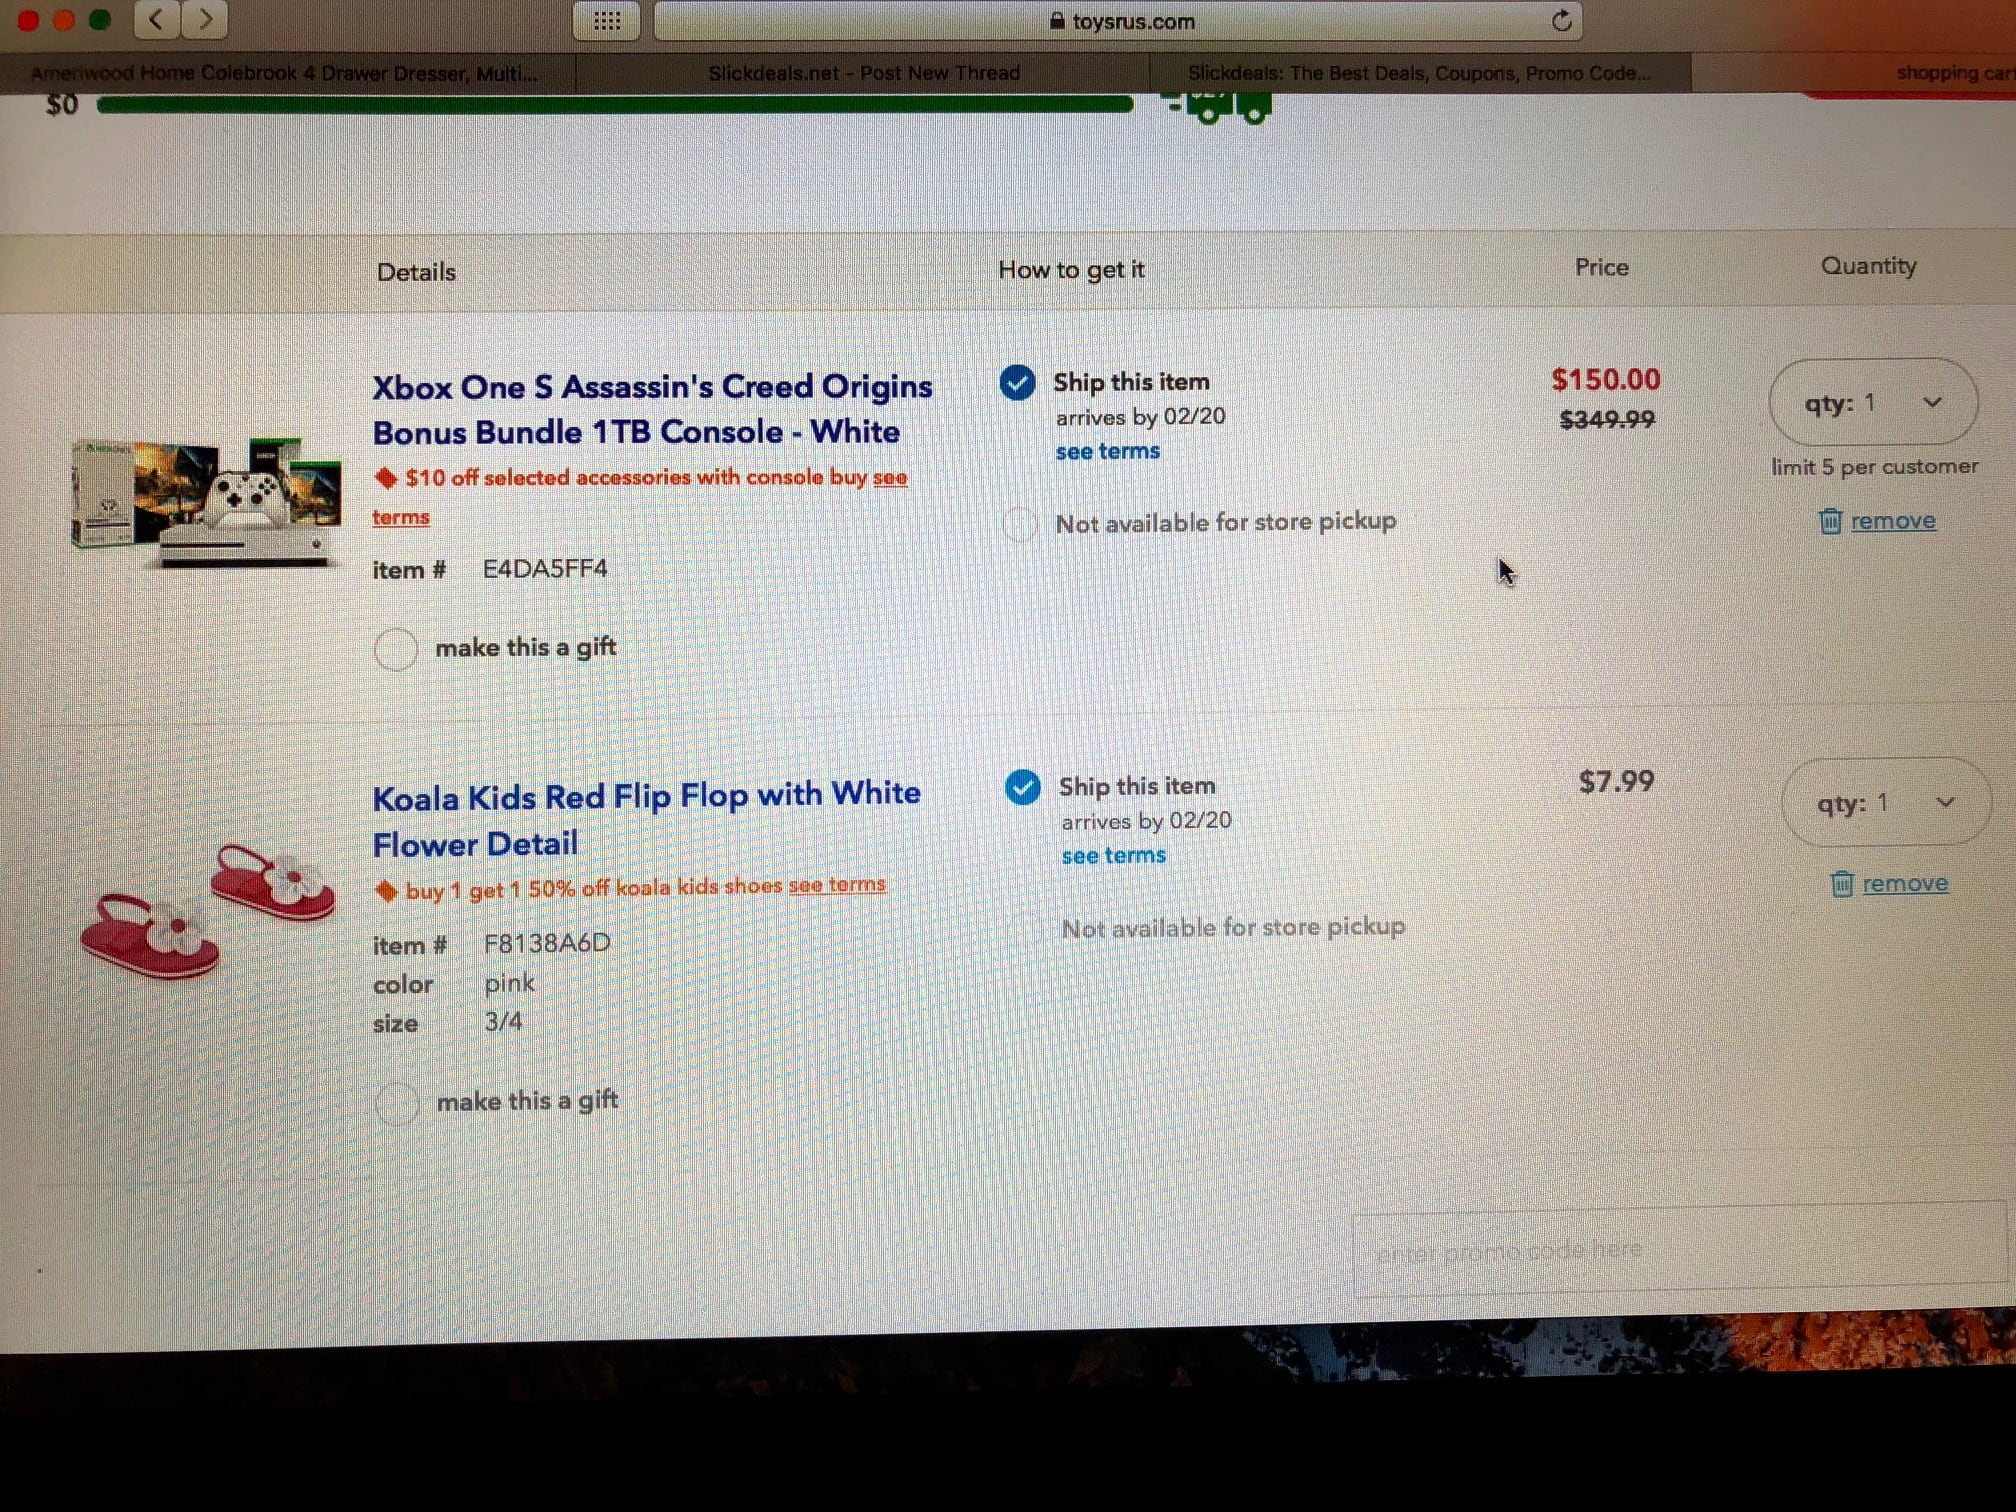 Toys R Us 50% off Xbox One YMMV $150, 50% off other items included